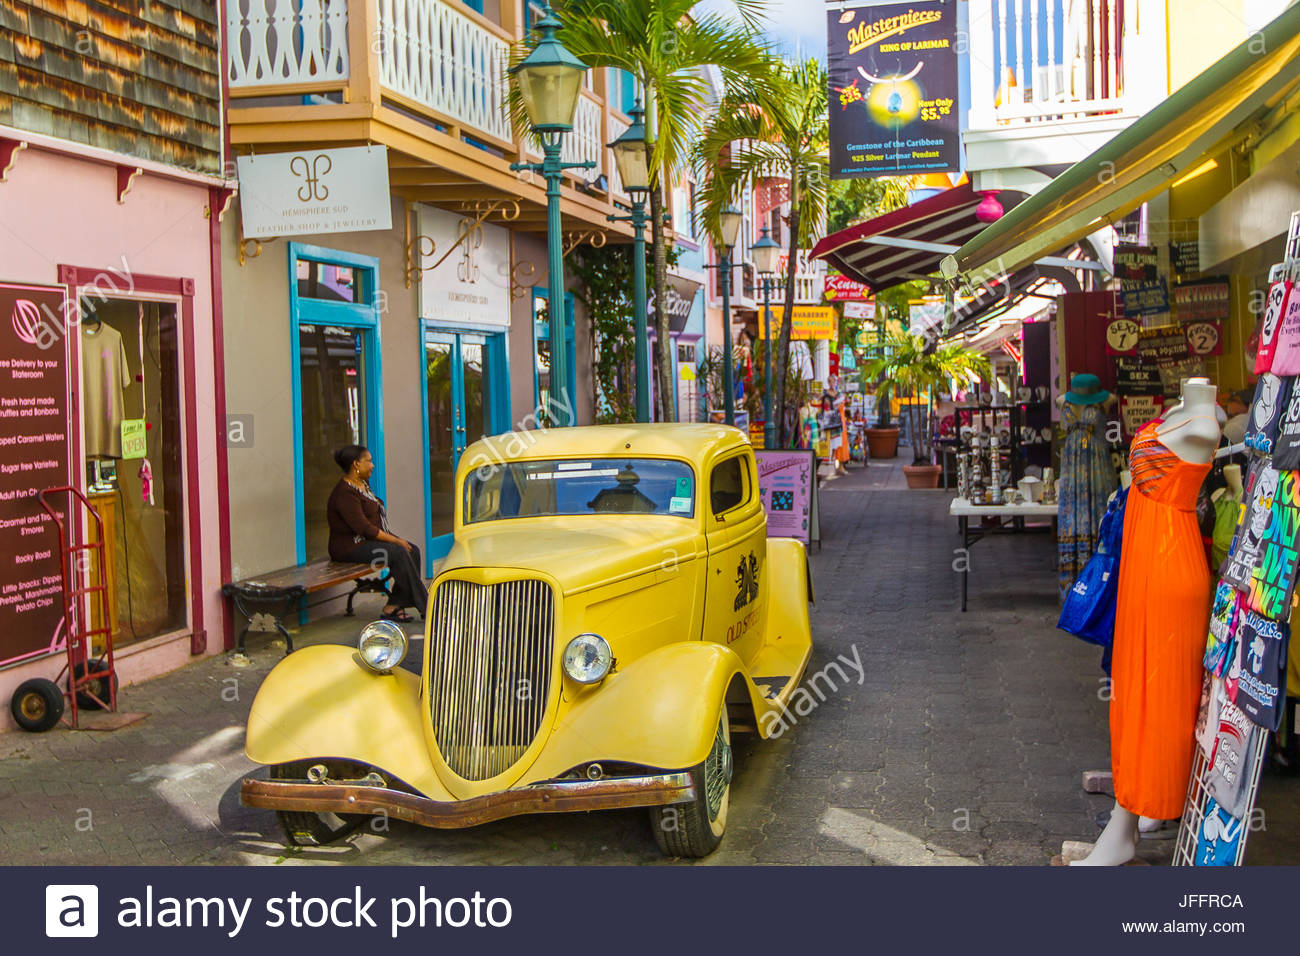 A yellow antique car in the colorful downtown marketplace in Philipsburg. - Stock Image